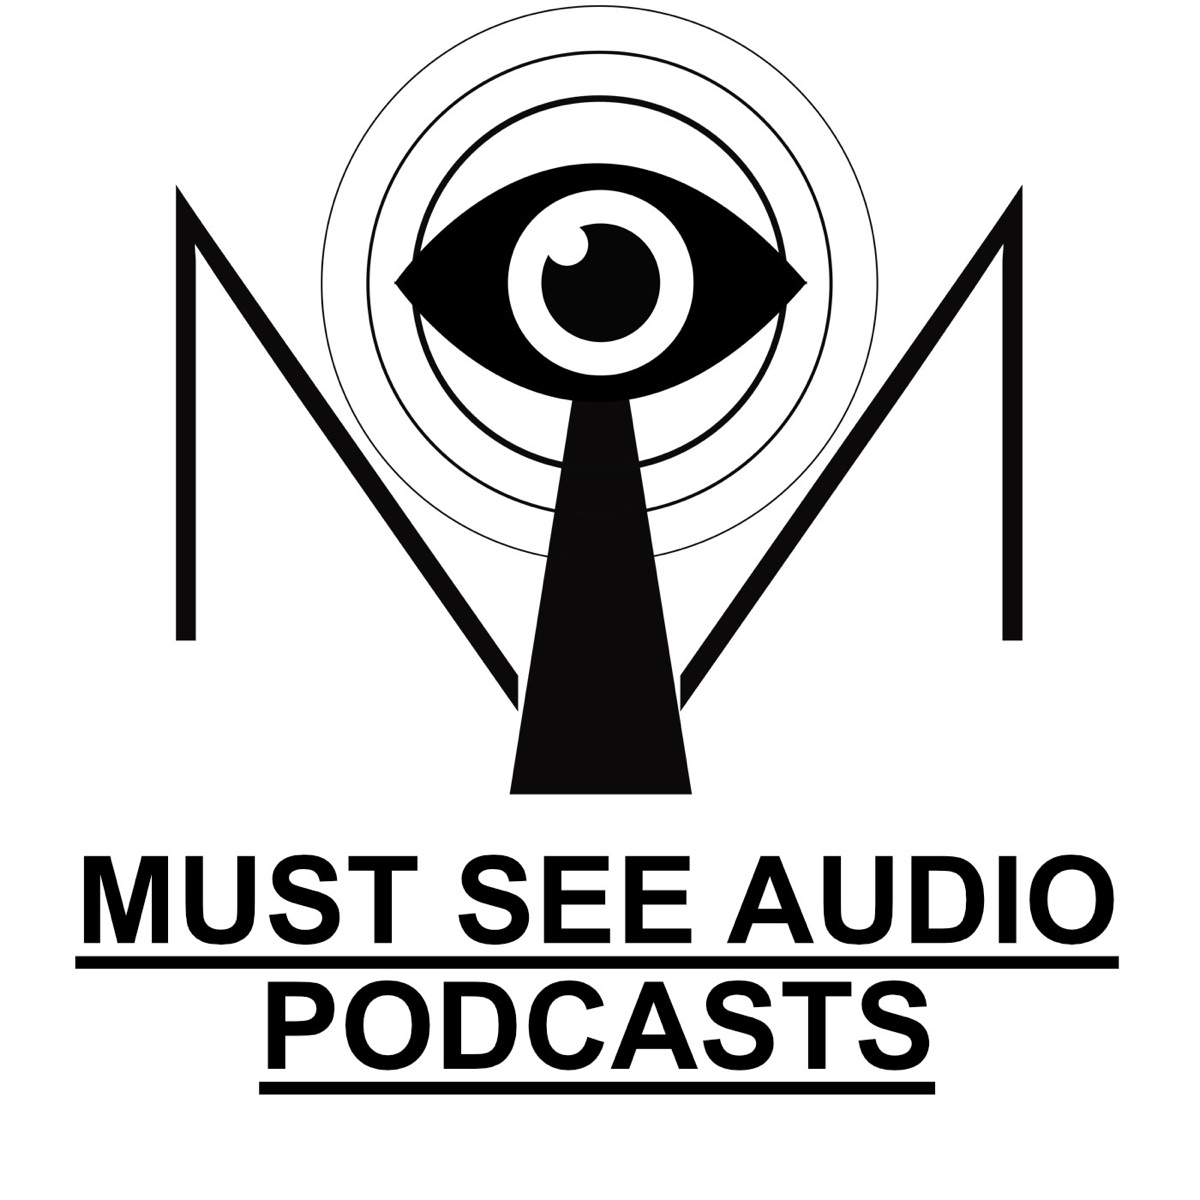 The Must See Audio Podcast